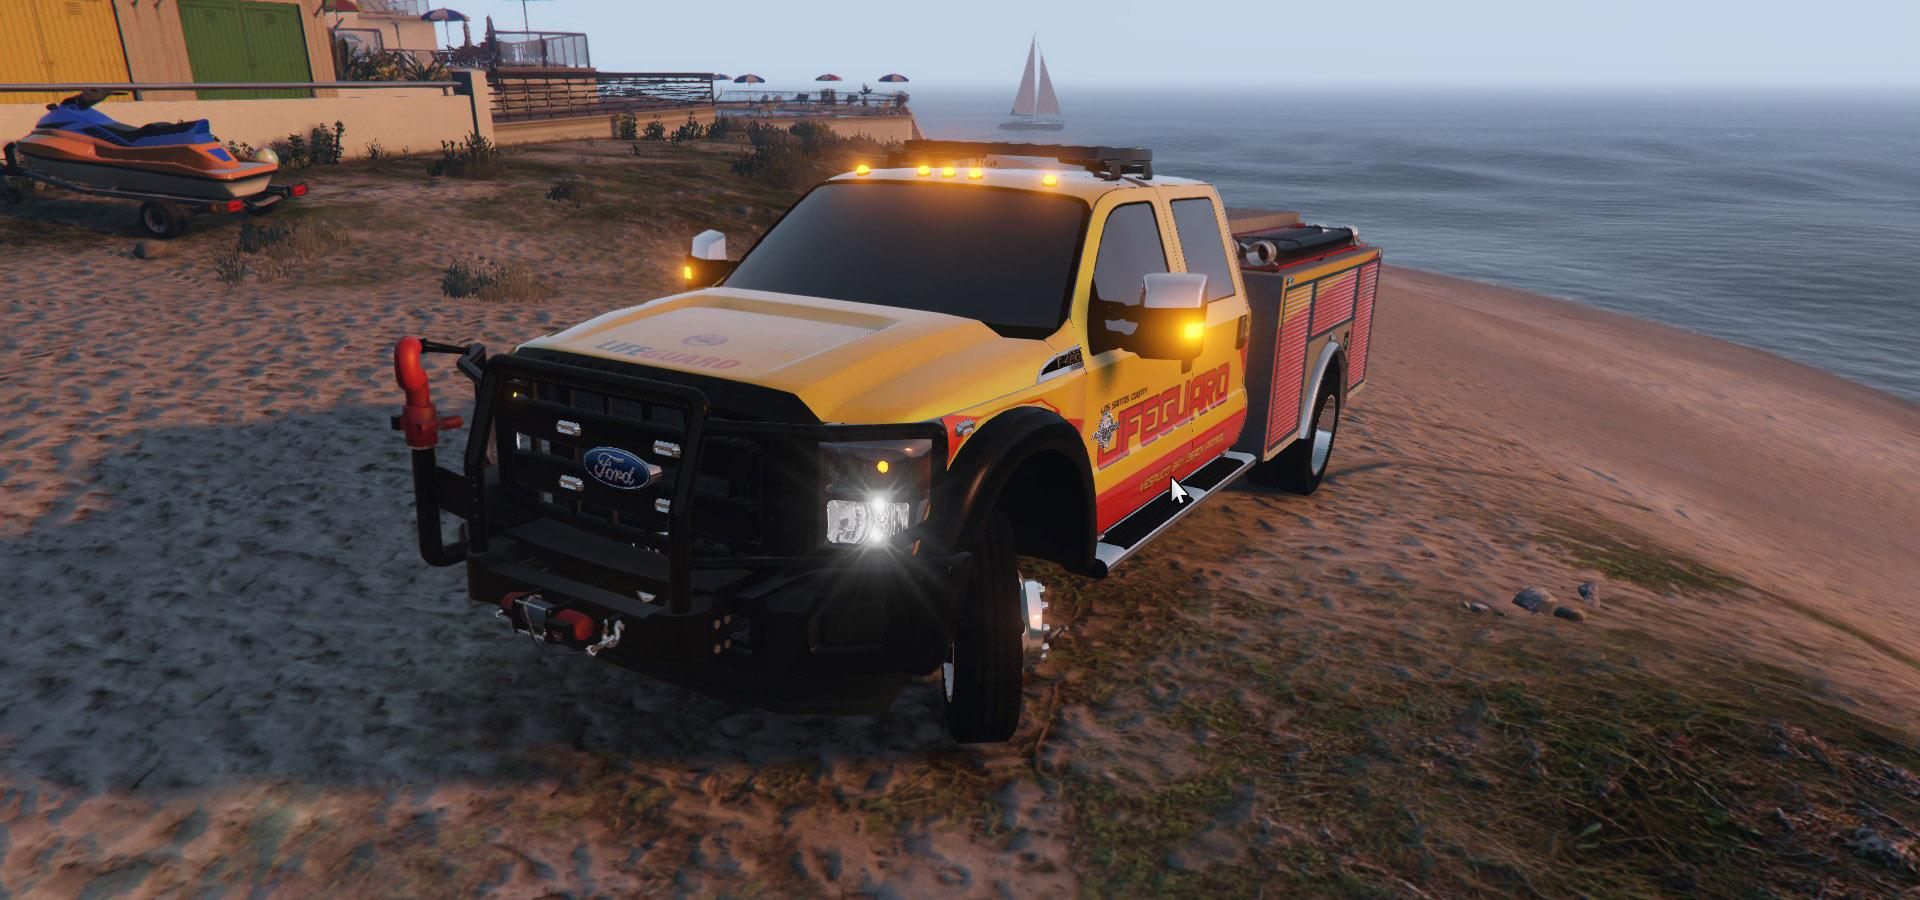 Ford F-350 Lifeguard Skin from Baywatch Movie - GTA5-Mods.com